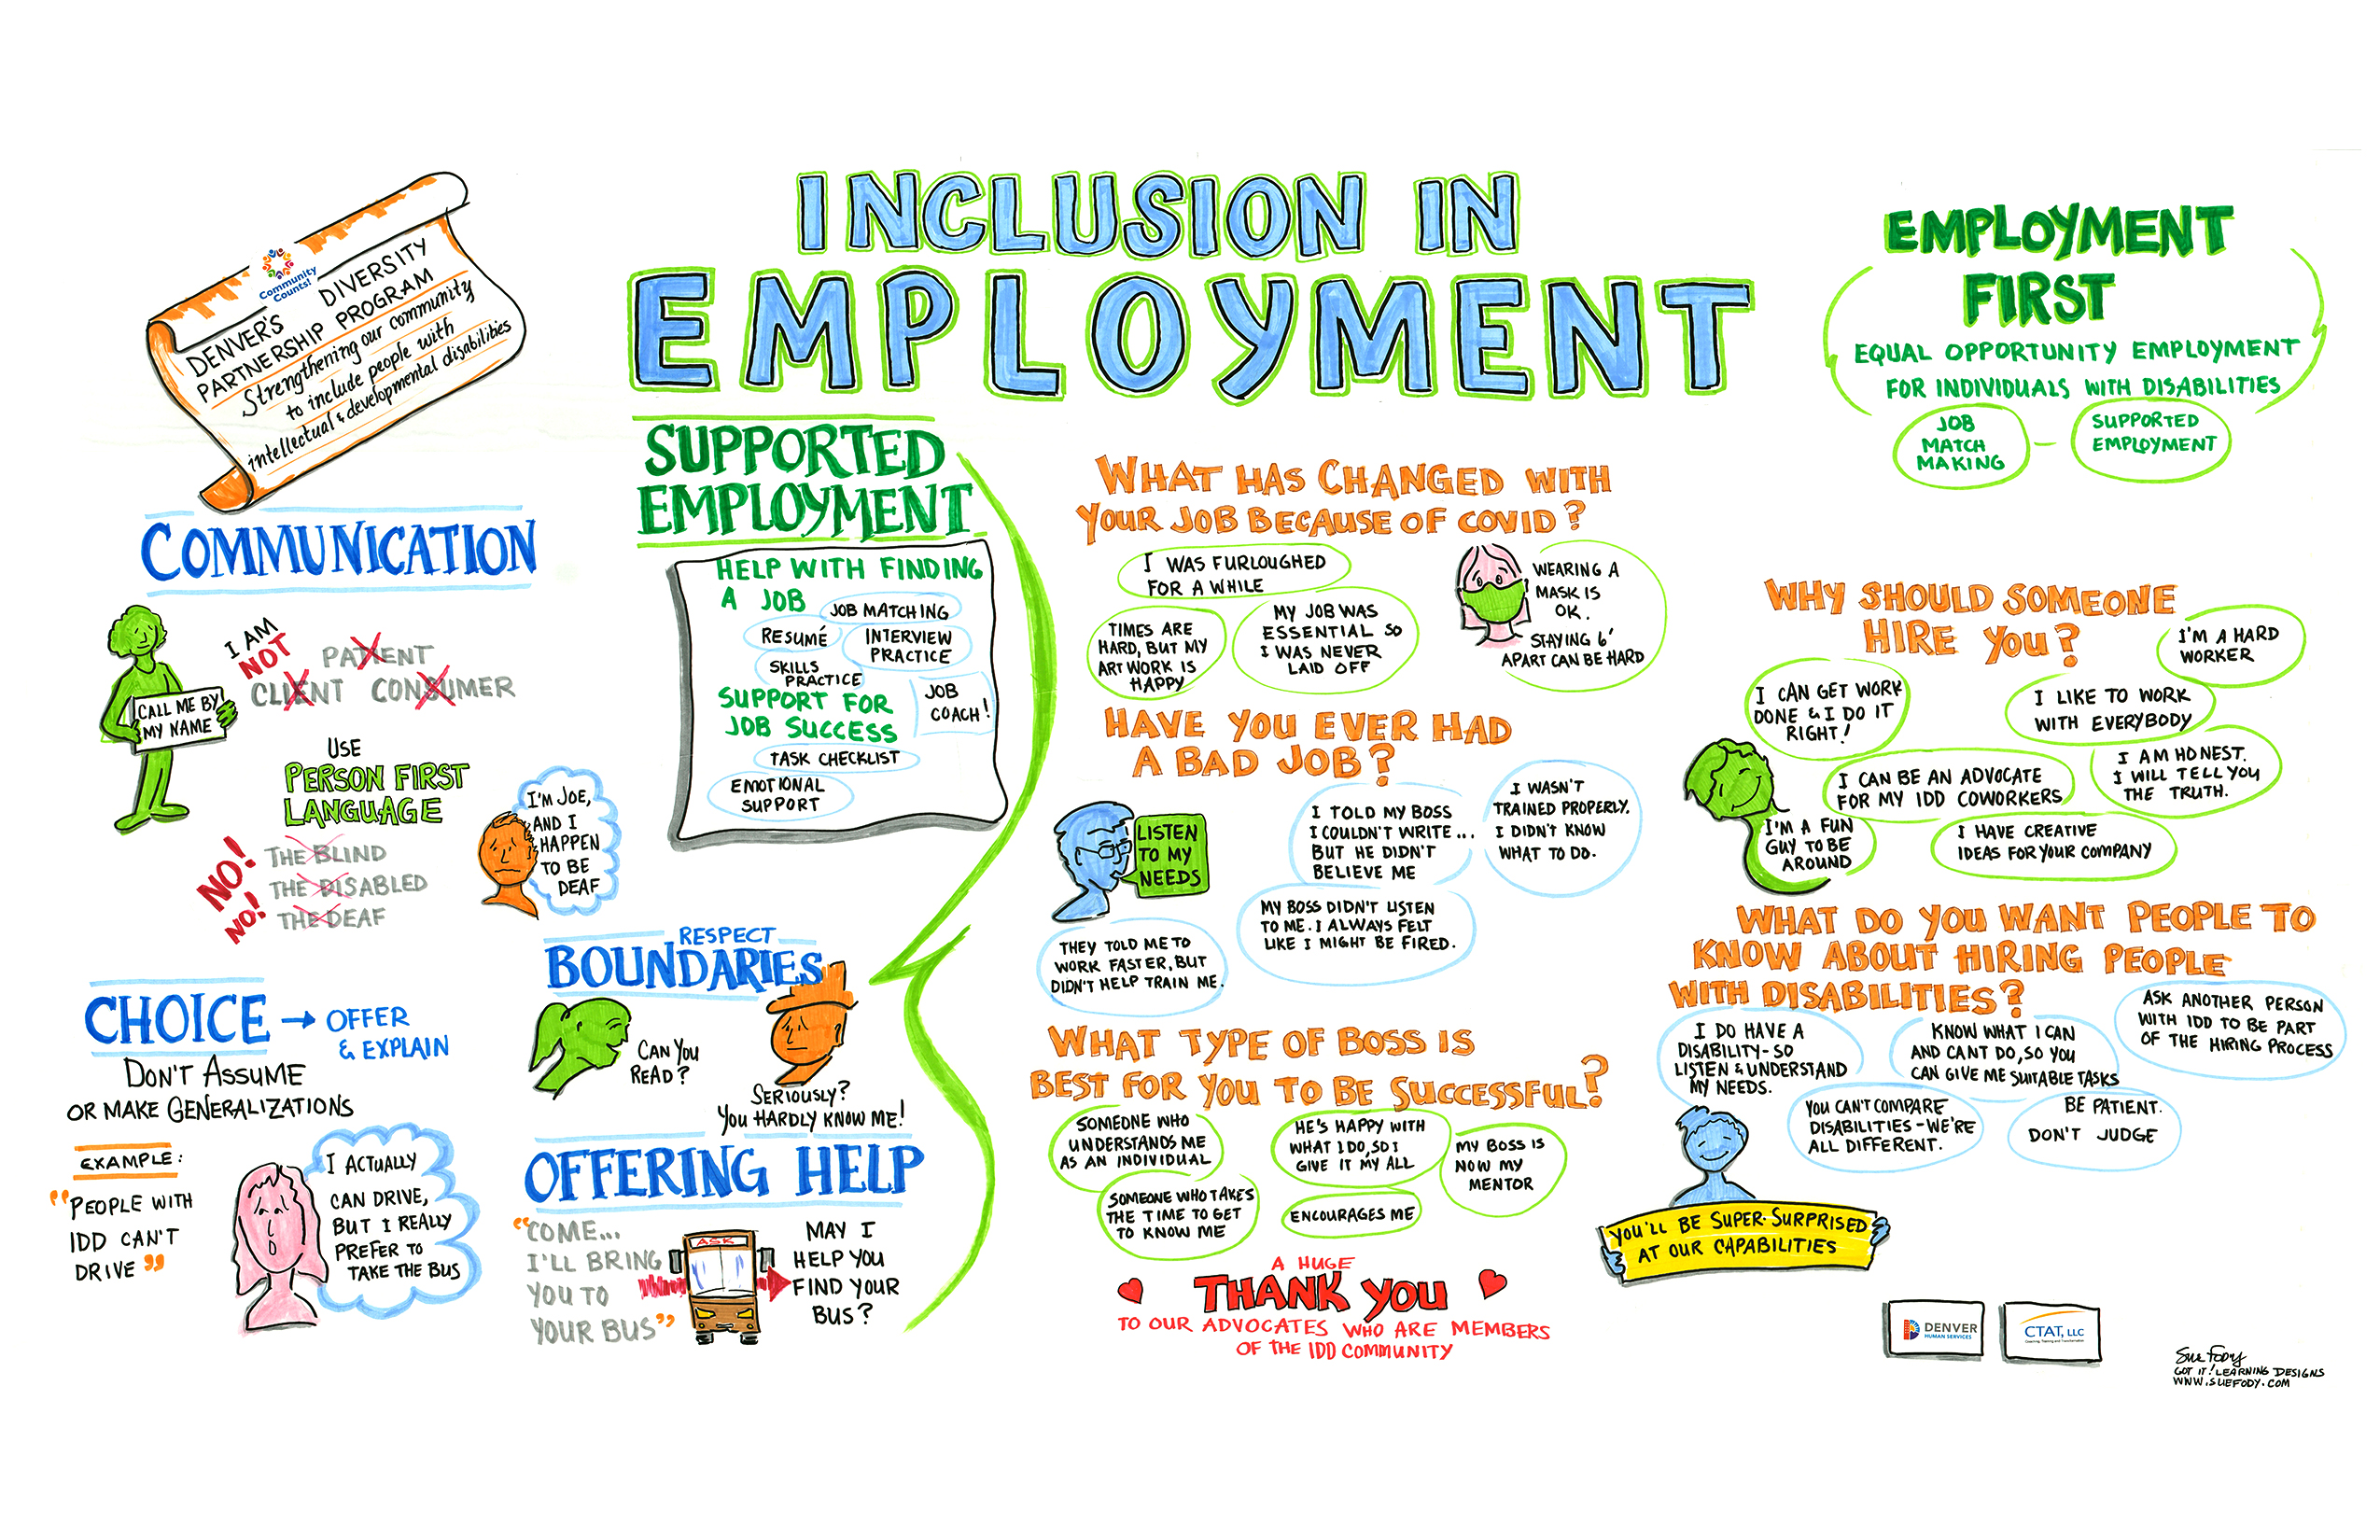 Denver Human Services graphic recording example by Sue Fody of Got It! Learning Designs in Denver, CO.